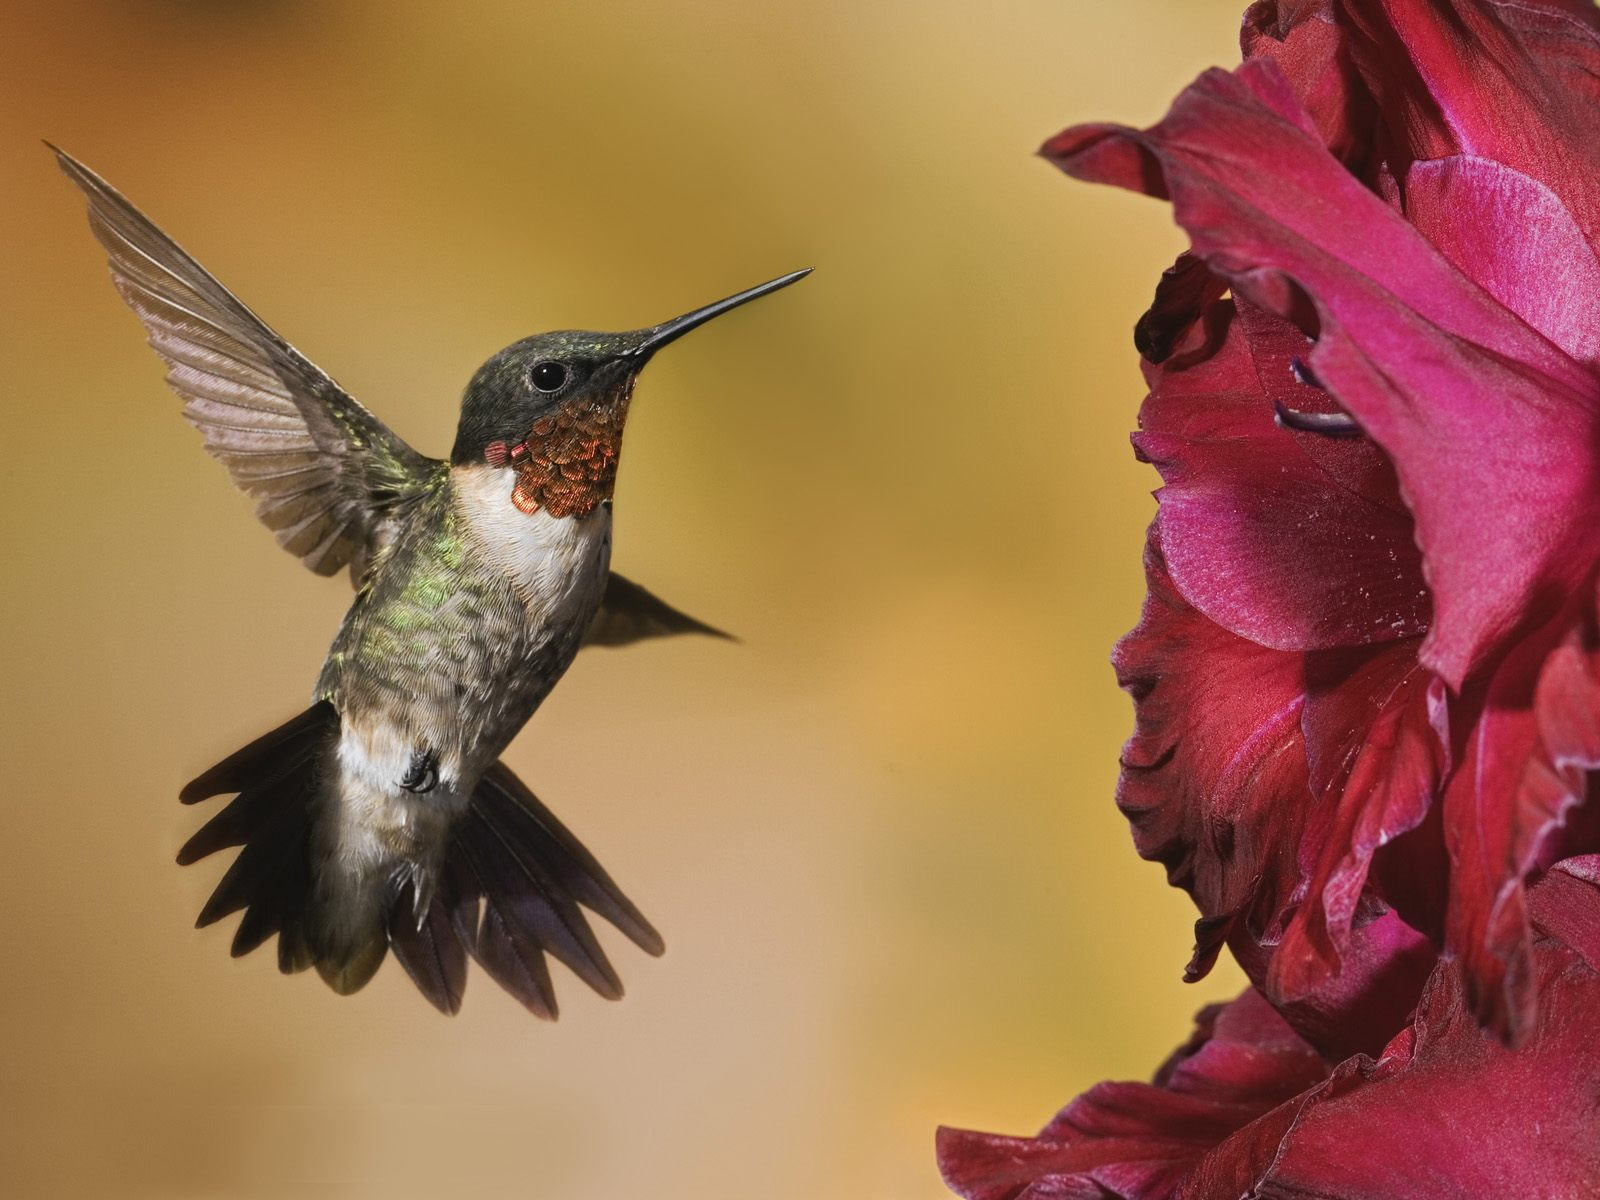 http://4.bp.blogspot.com/-kTlgZdcm4L8/UA98WctuwyI/AAAAAAAAAr4/E8w7VZeHTNo/s1600/Amazing%20nature%20wallpaper%20Male%20Ruby-Throated%20Hummingbird.jpg